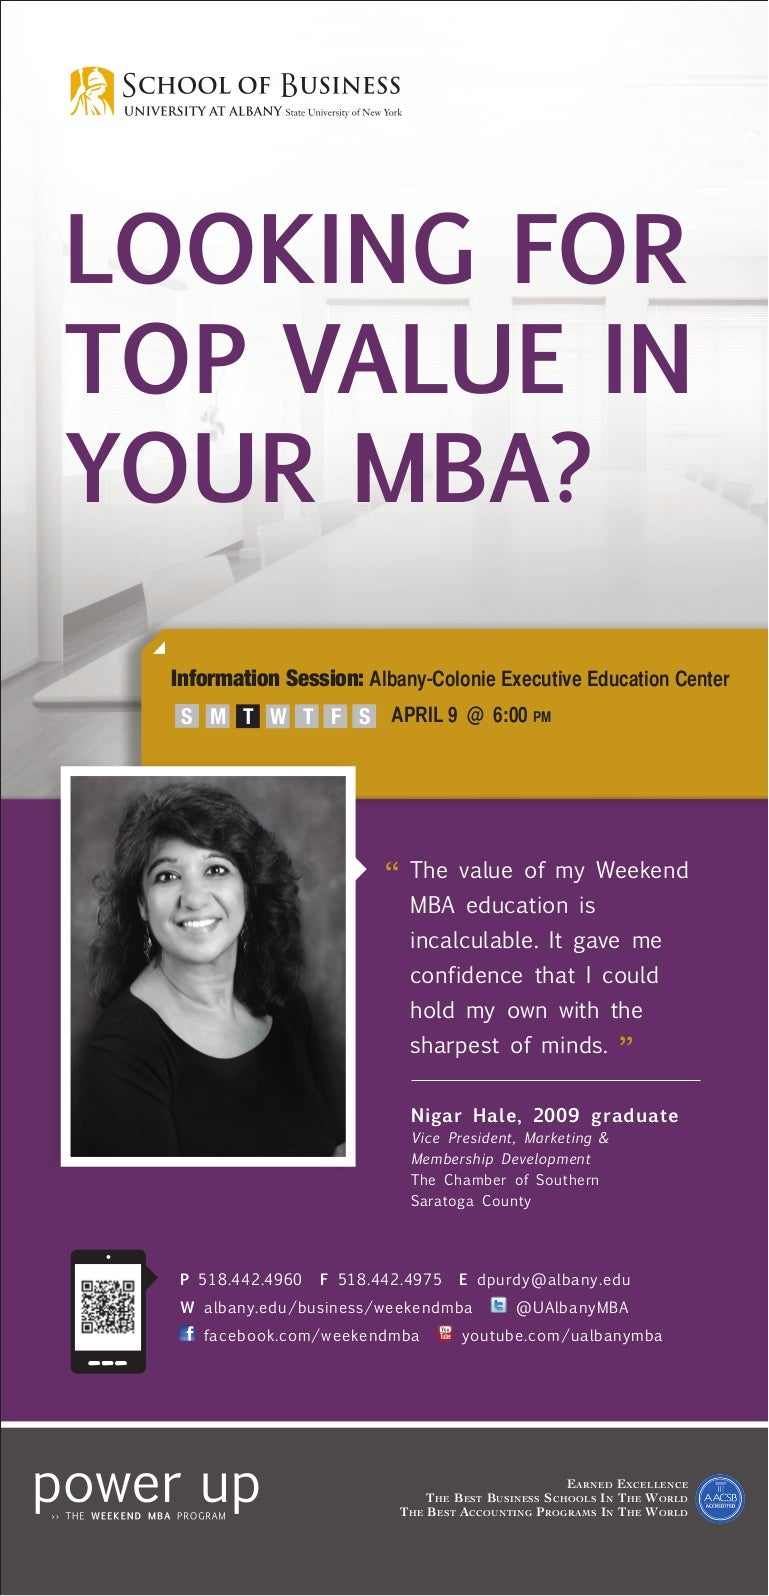 ualbany weekend mba looking for top value in your mba ad 5 11